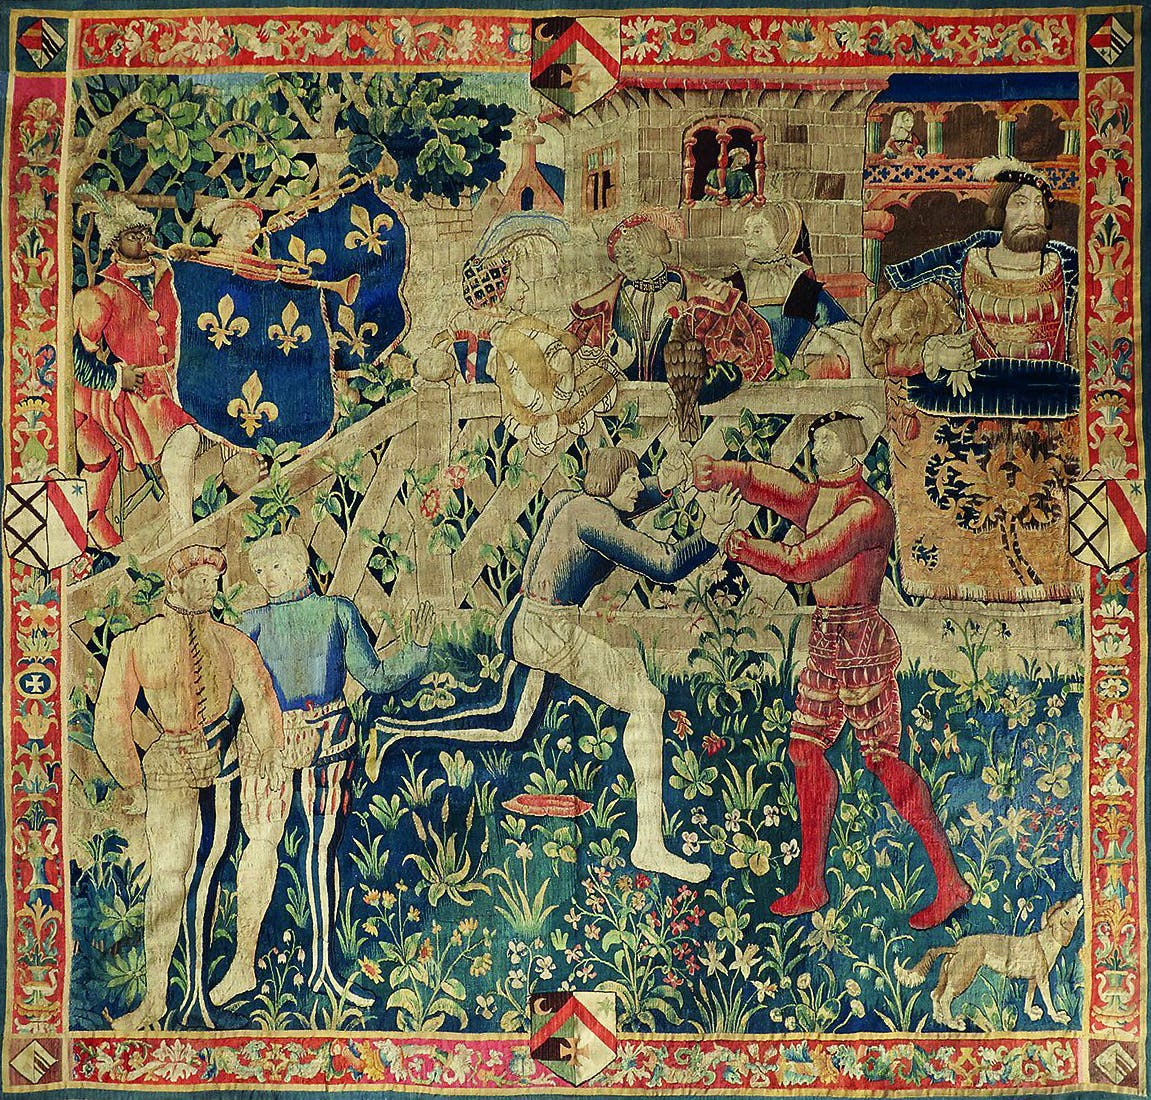 Tapestry depicting King François I of France at the Drap d'Or Camp, attending a contest between two wrestlers.